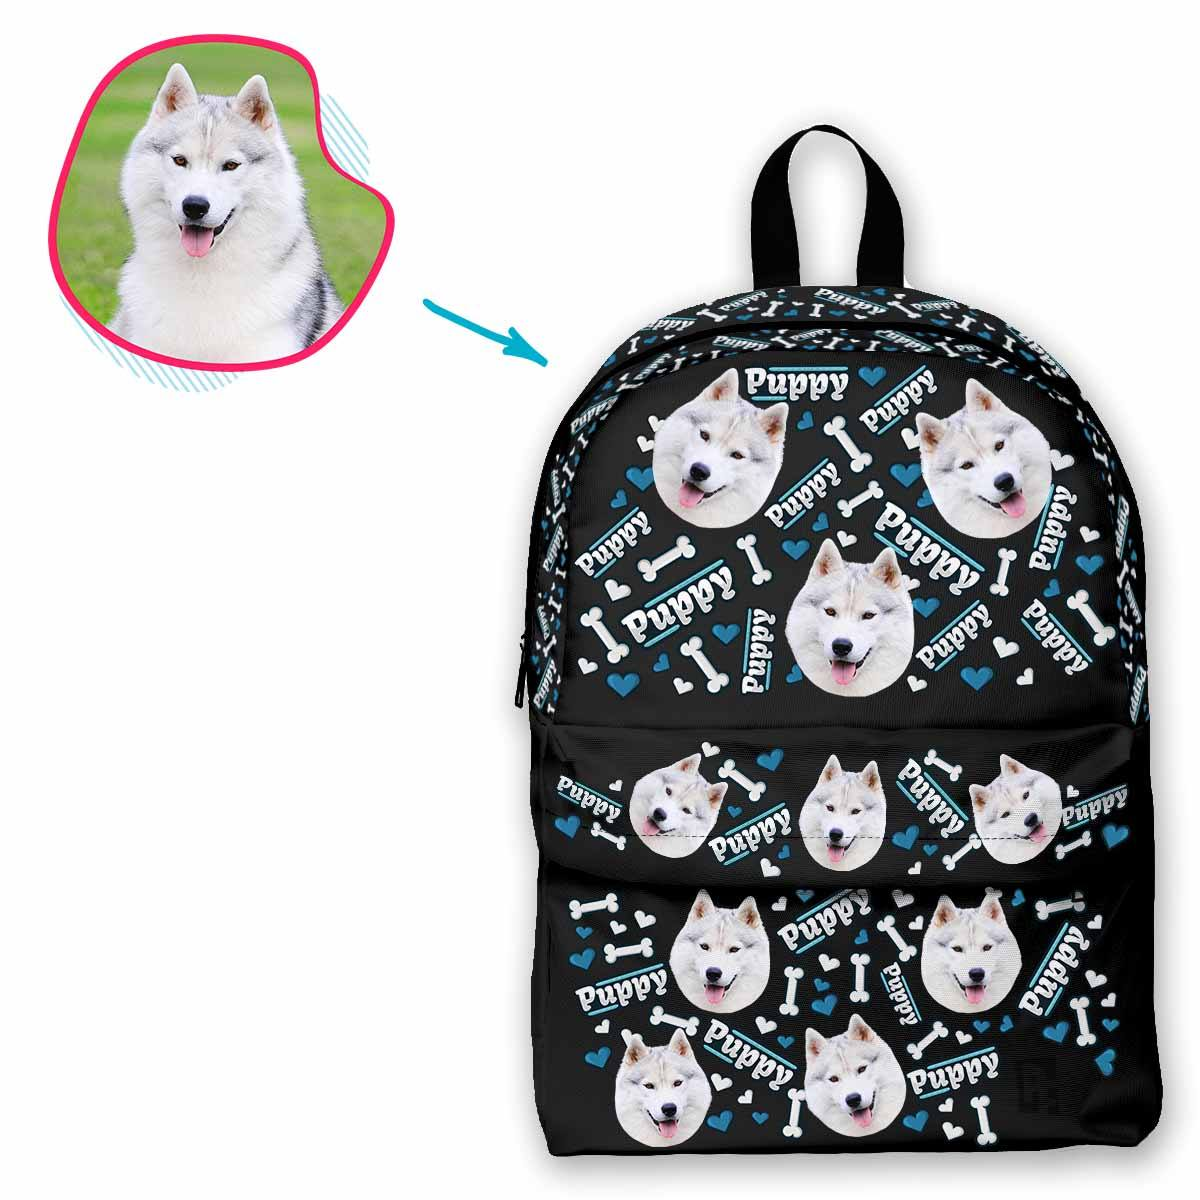 dark Puppy classic backpack personalized with photo of face printed on it